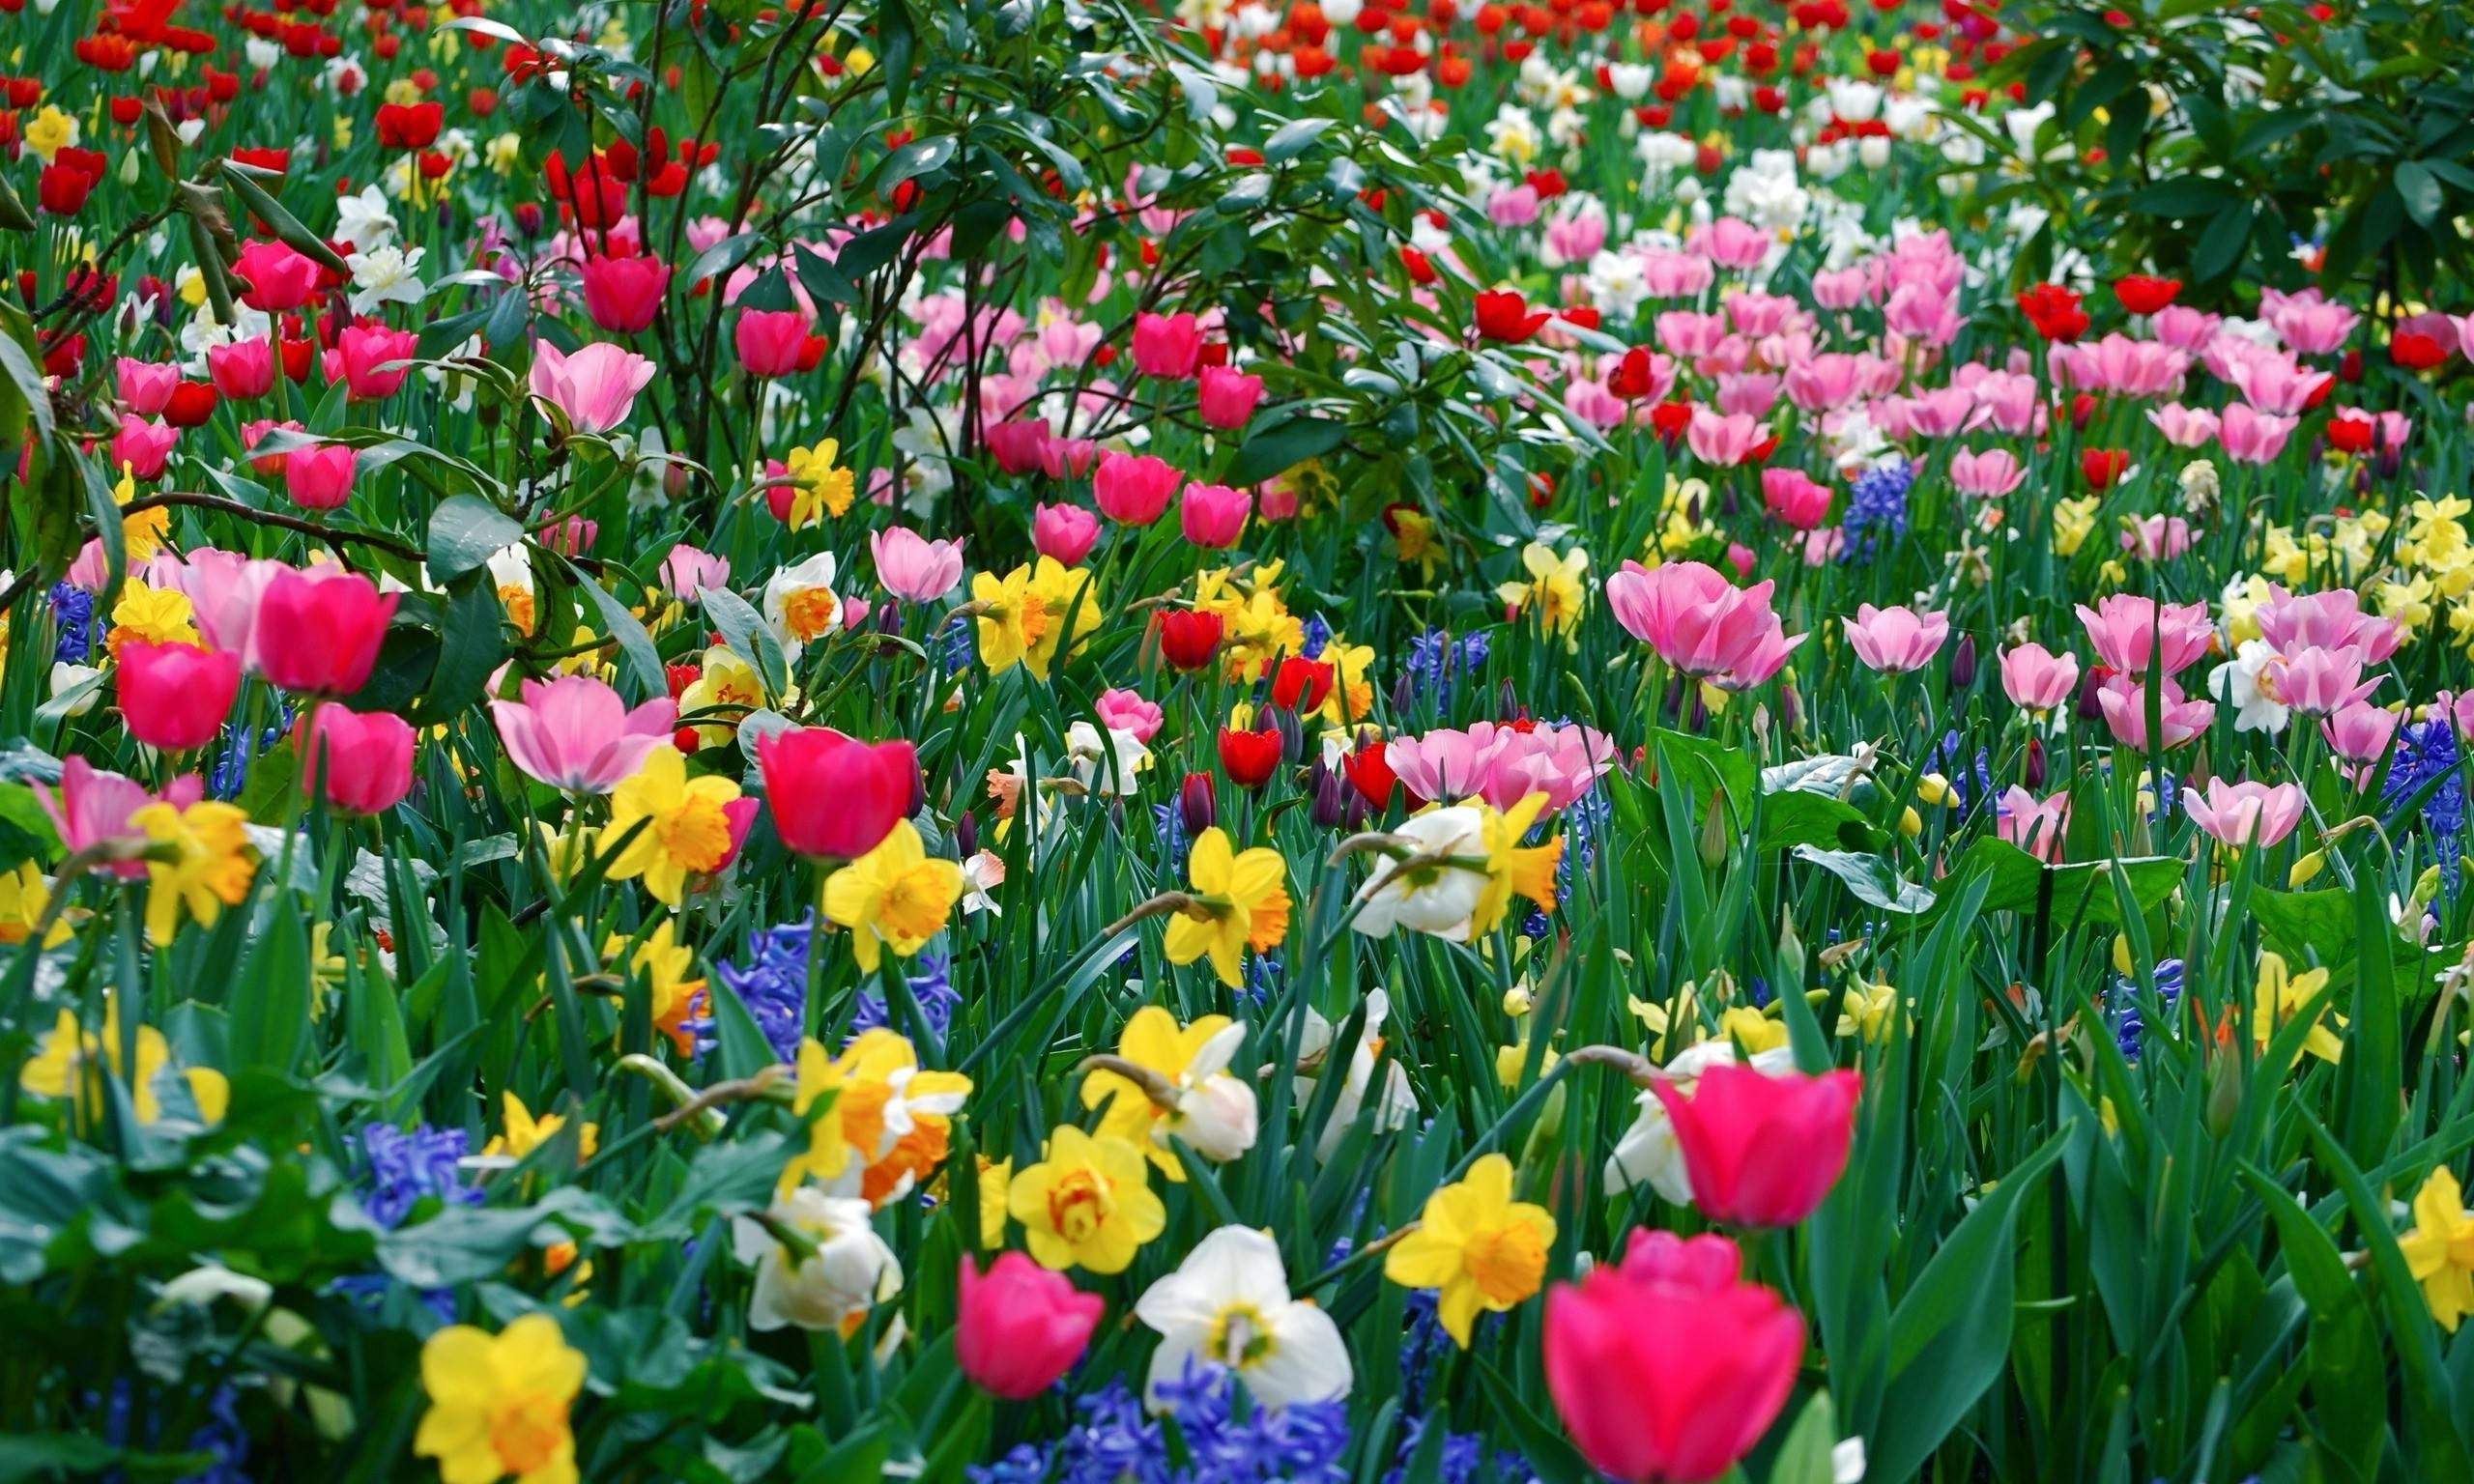 Spring flowers background 52 images 2560x1536 picture cool backgrounds spring flower wallpapers hd wallpapers mightylinksfo